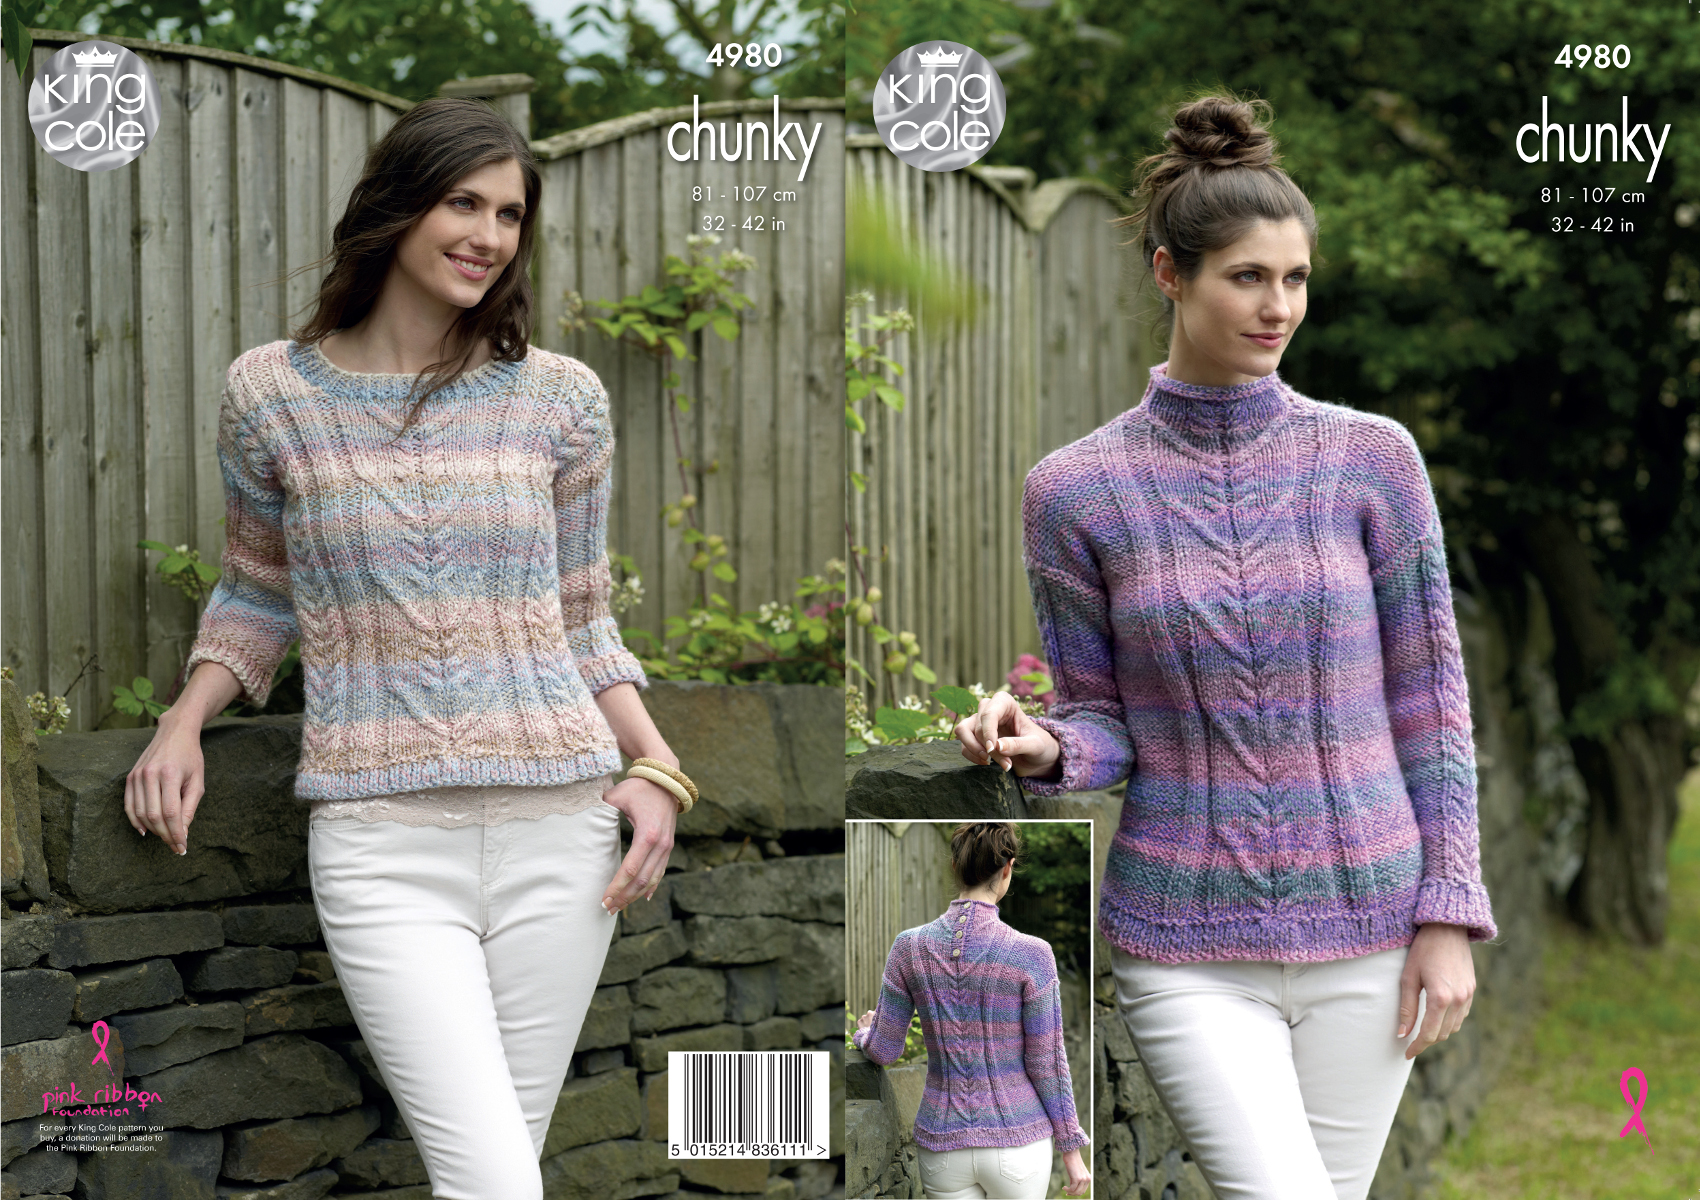 King Cole 4980 Knitting Pattern Sweater